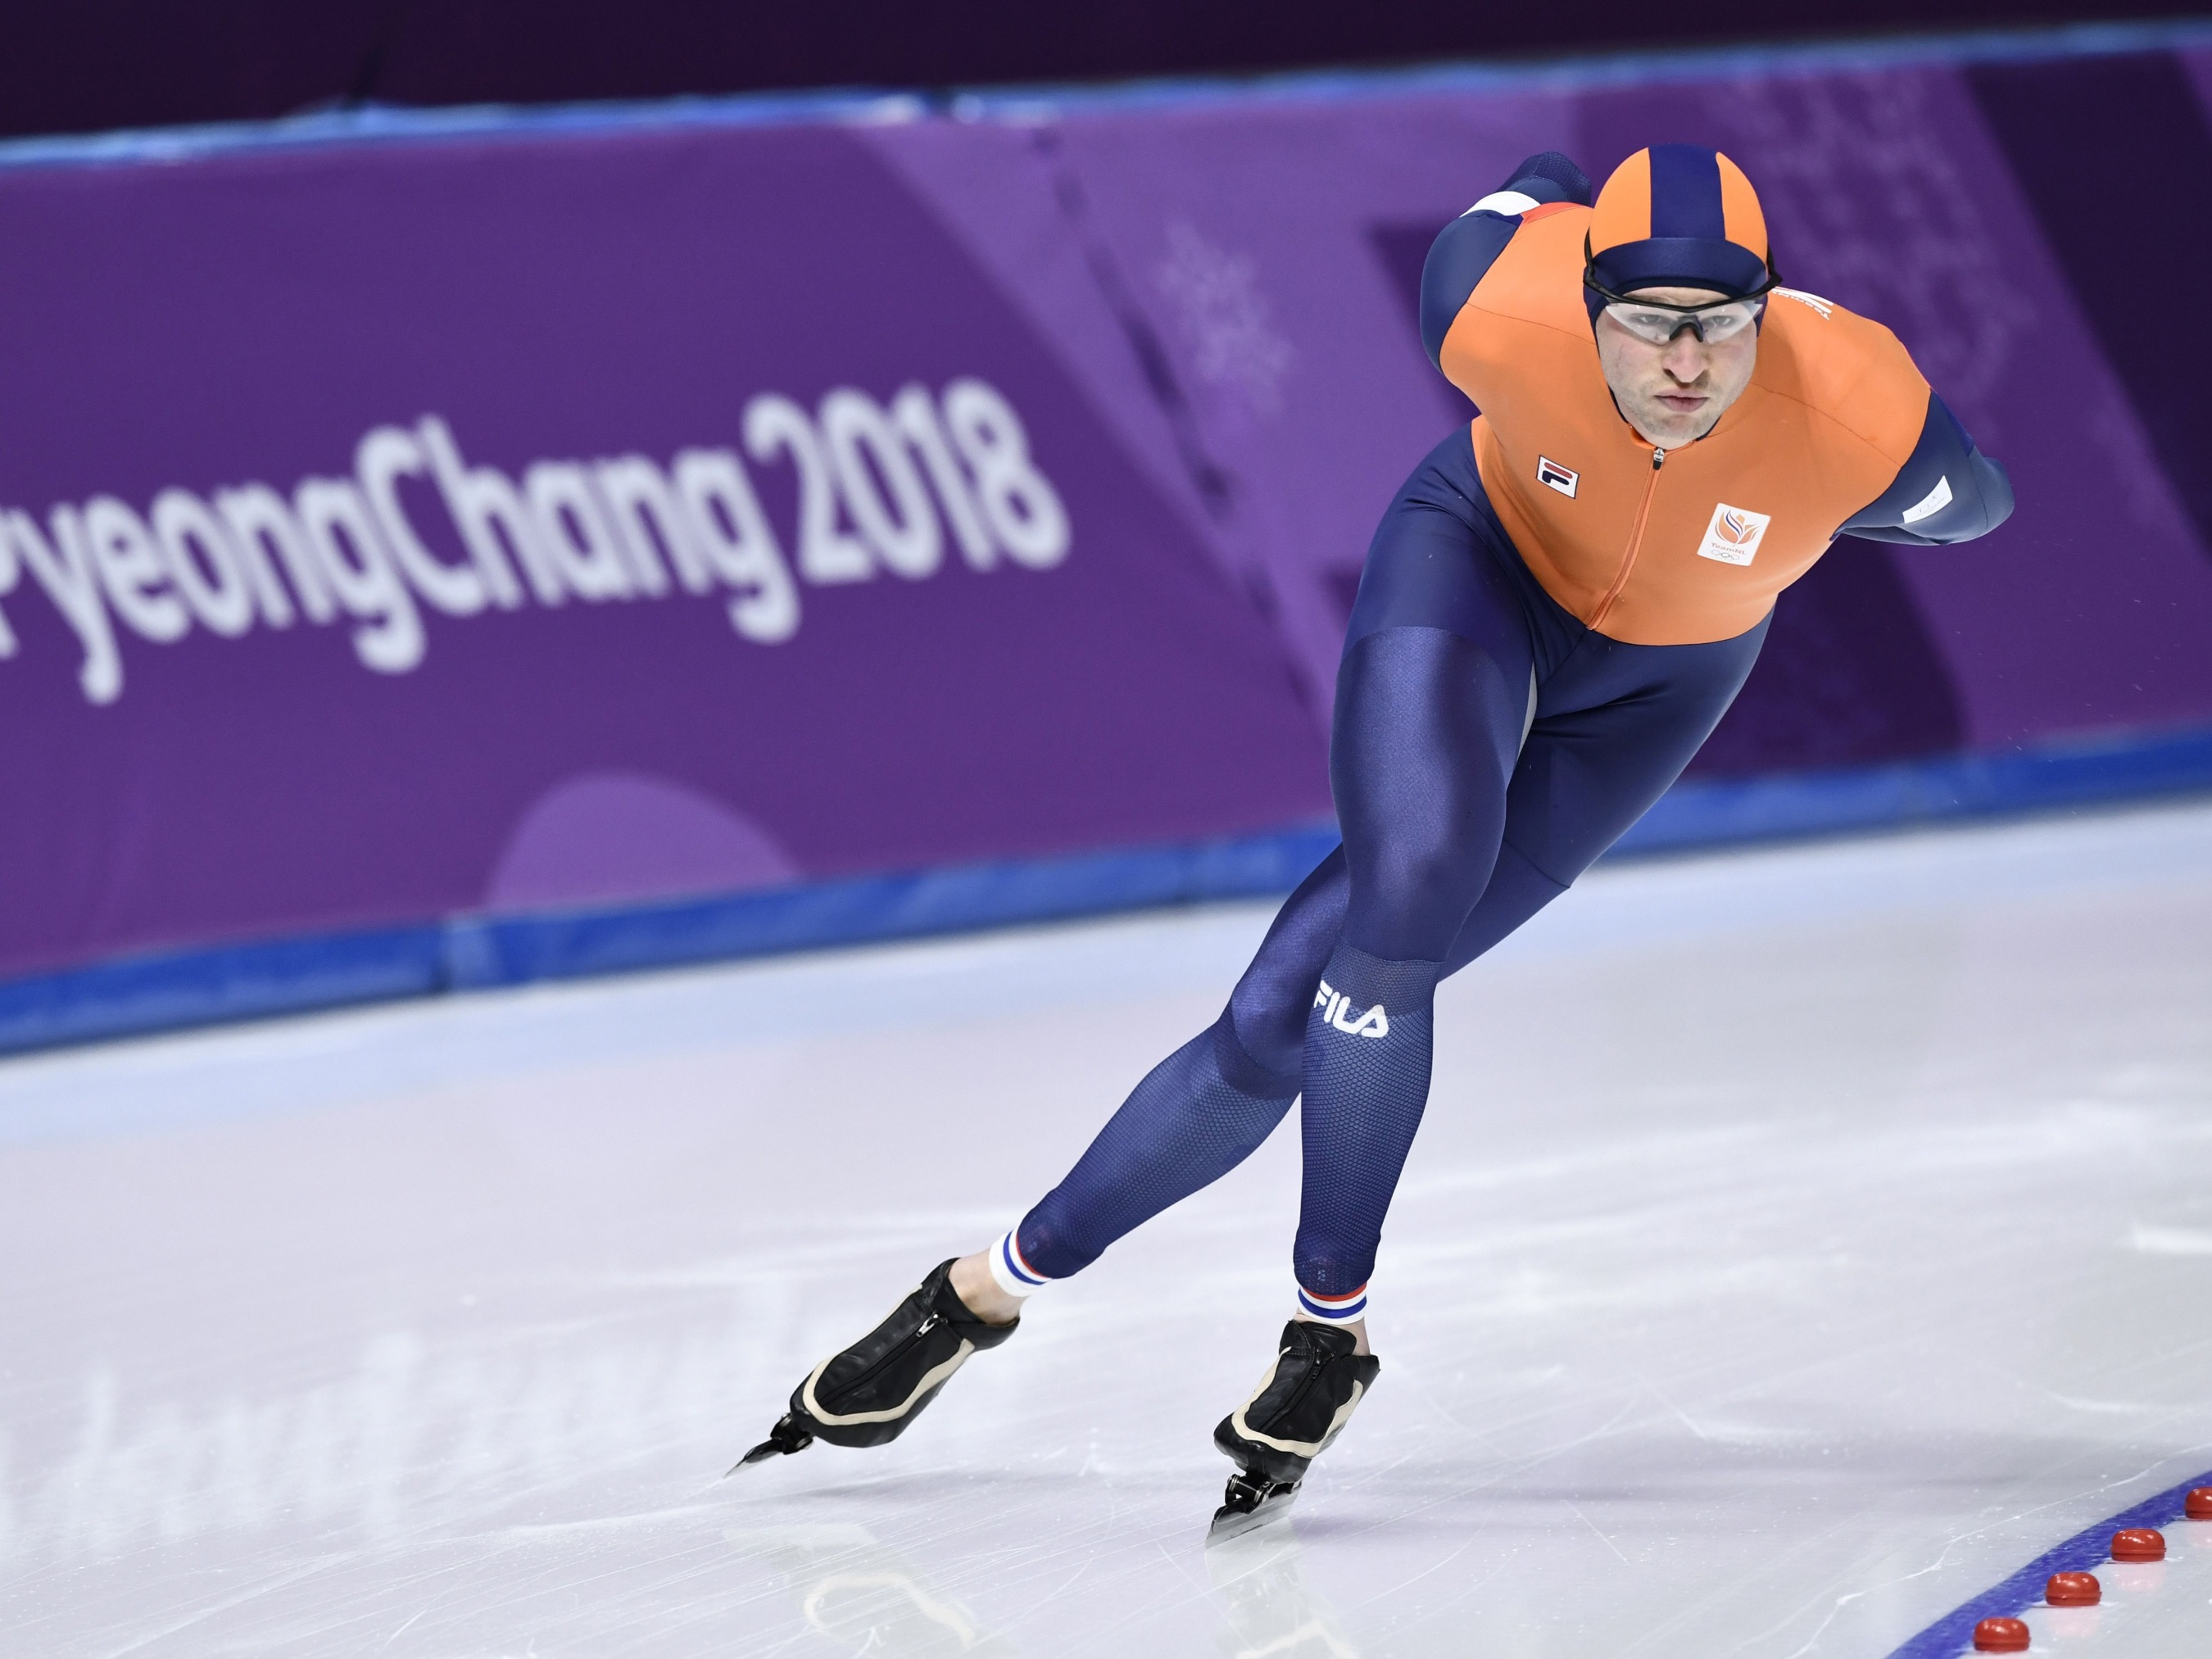 ccf5366105bb The Dutch Own A Single Sport Like No Other Country In The Winter Olympics